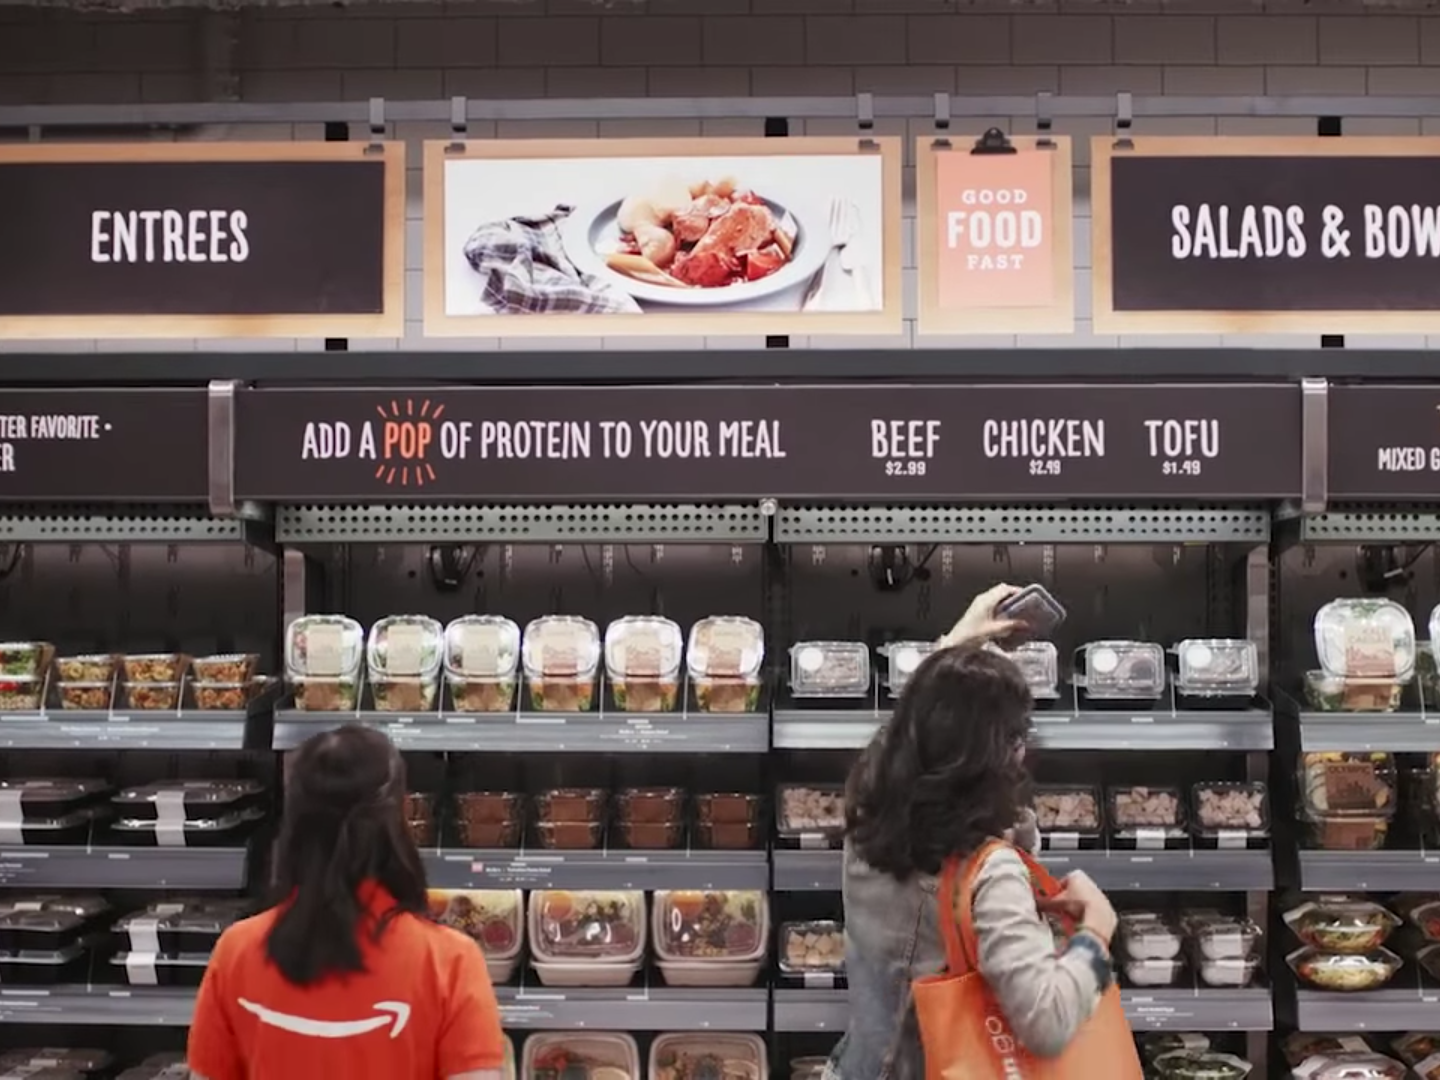 Artificial intelligence in grocery stores could affect what you buy and pay